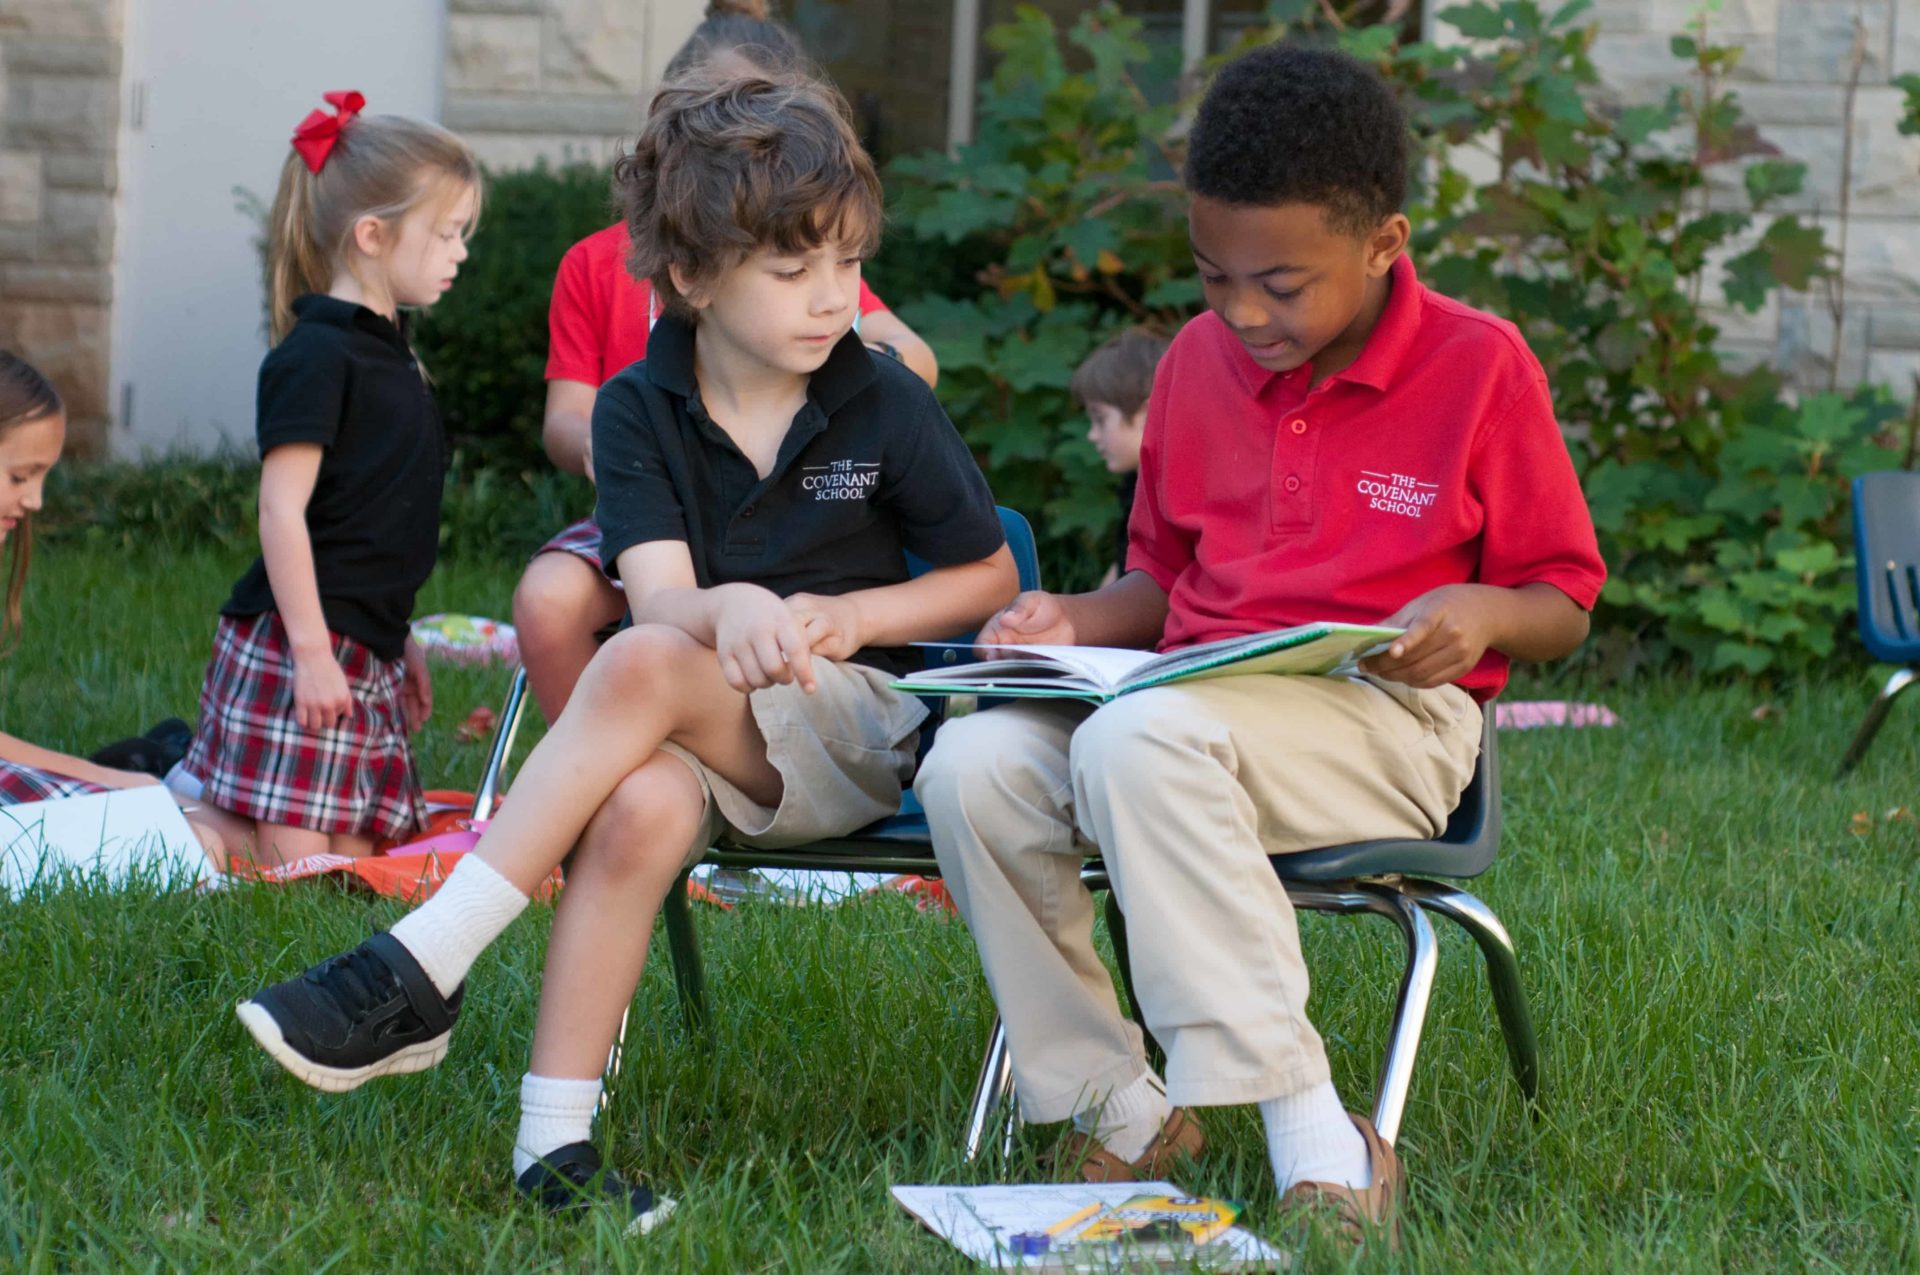 Students outside reading a book